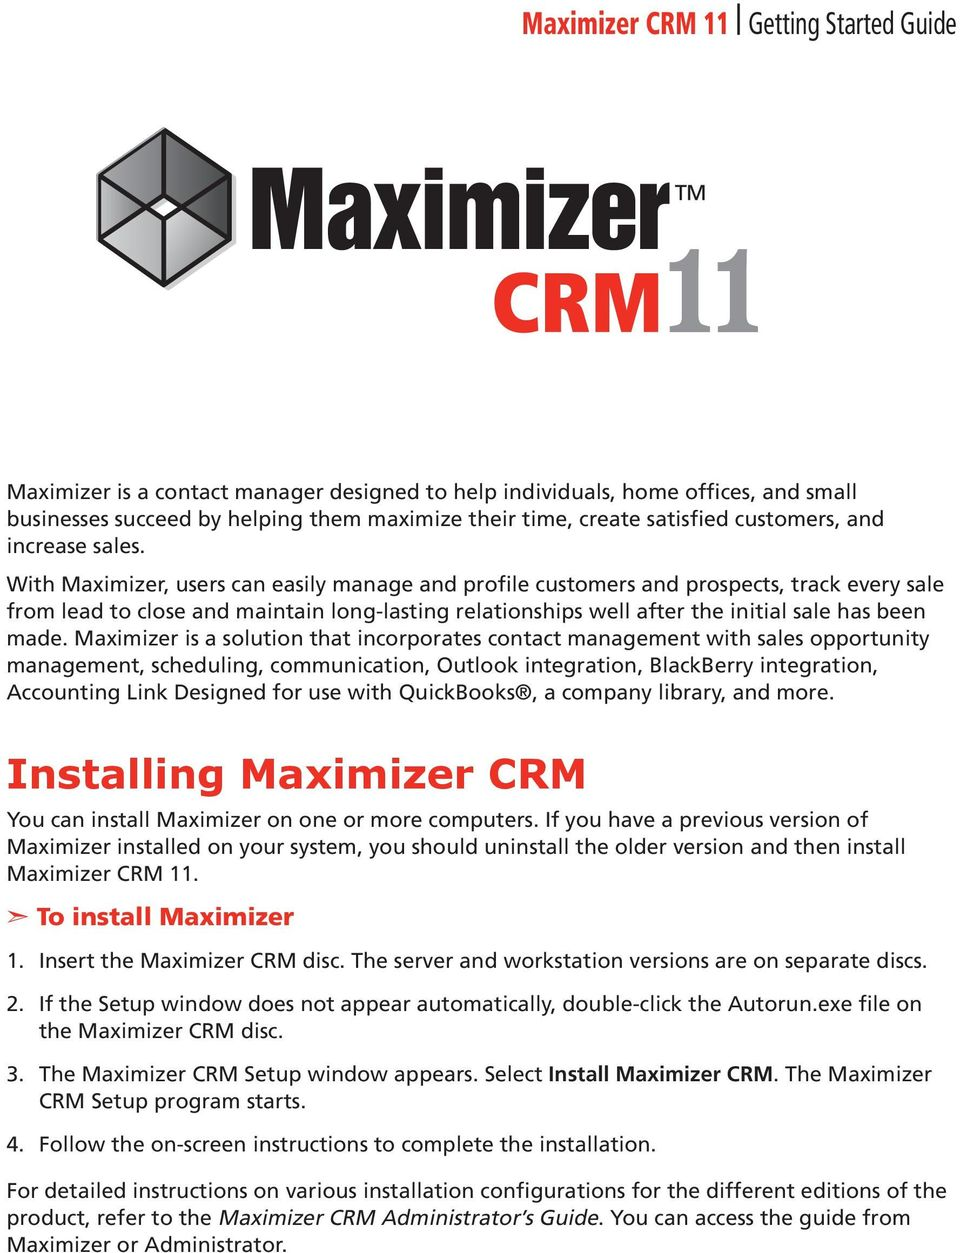 With Maximizer, users can easily manage and profile customers and prospects, track every sale from lead to close and maintain long-lasting relationships well after the initial sale has been made.